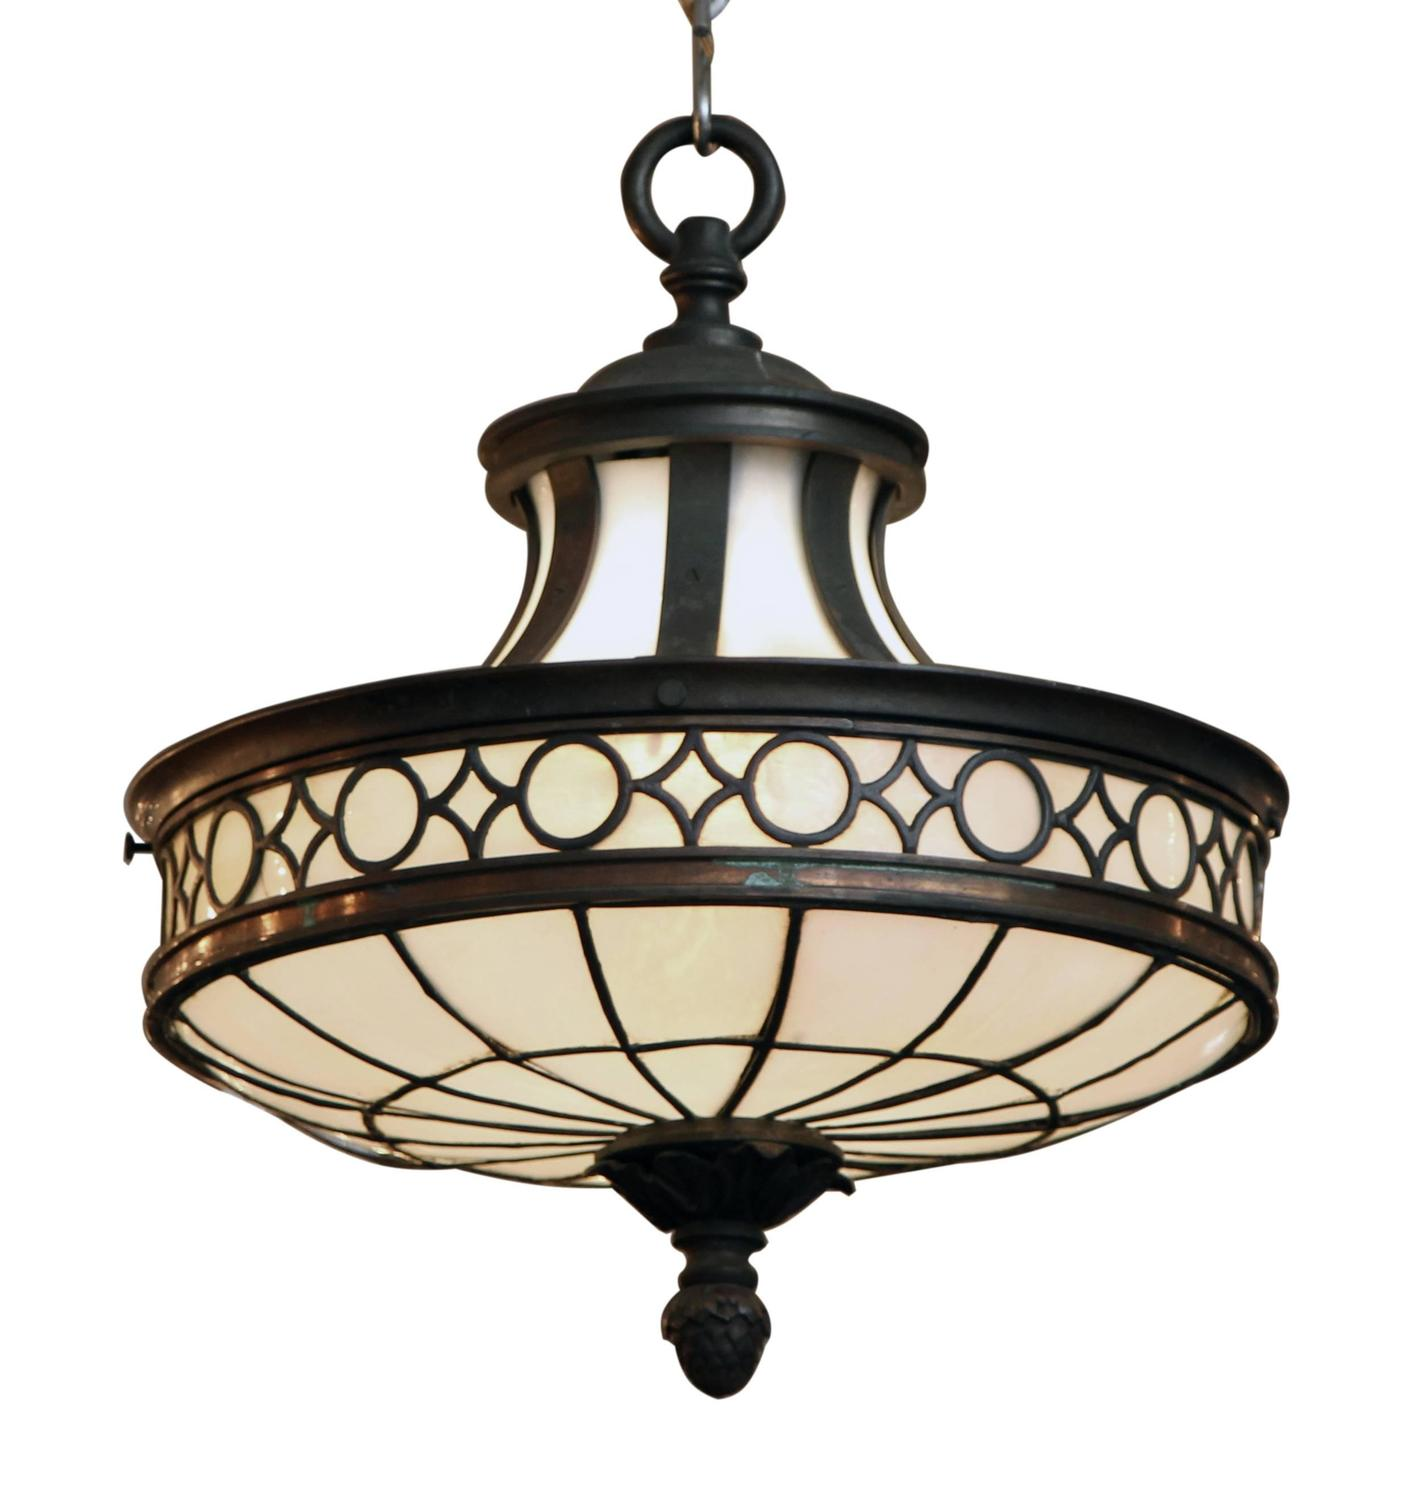 1910 Bronze Bank Pendant Light with Opalescent Glass and ...